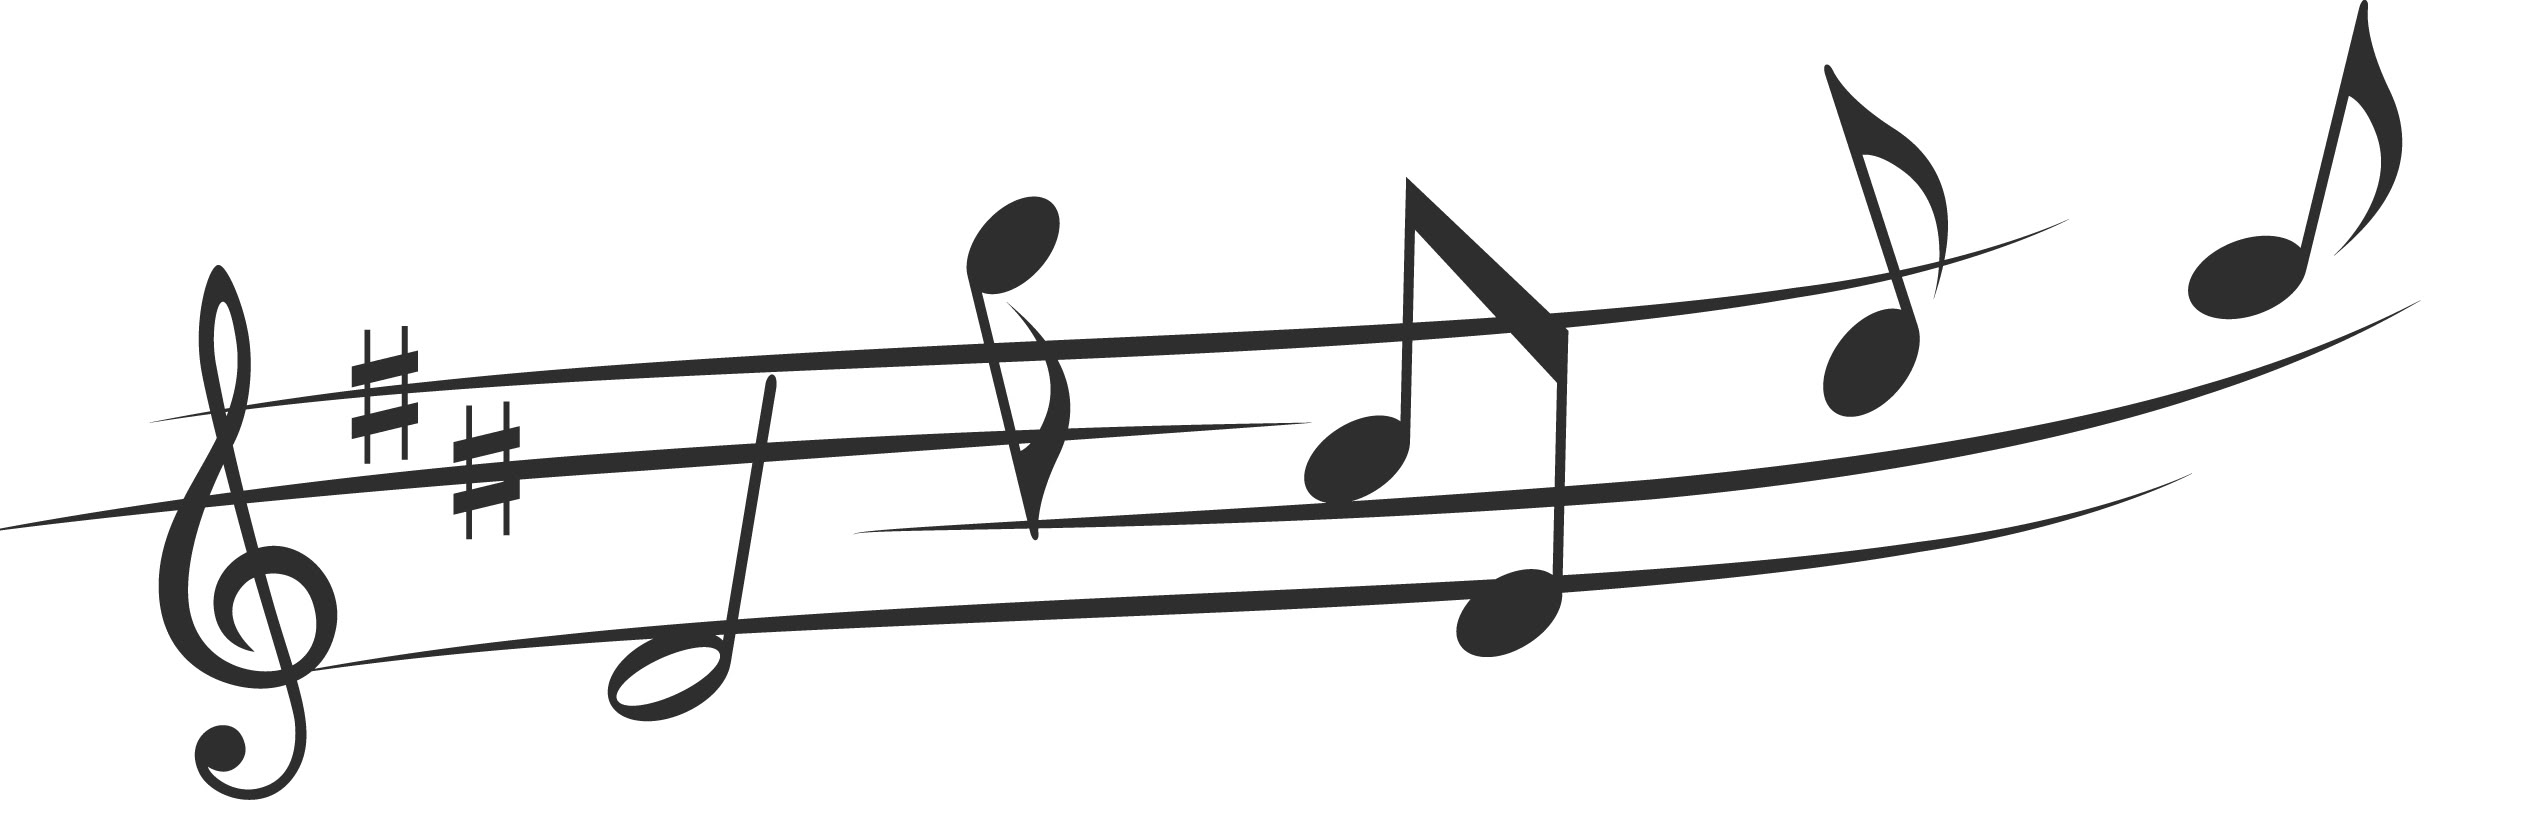 Music Note Borders Clip Art All About Clipart